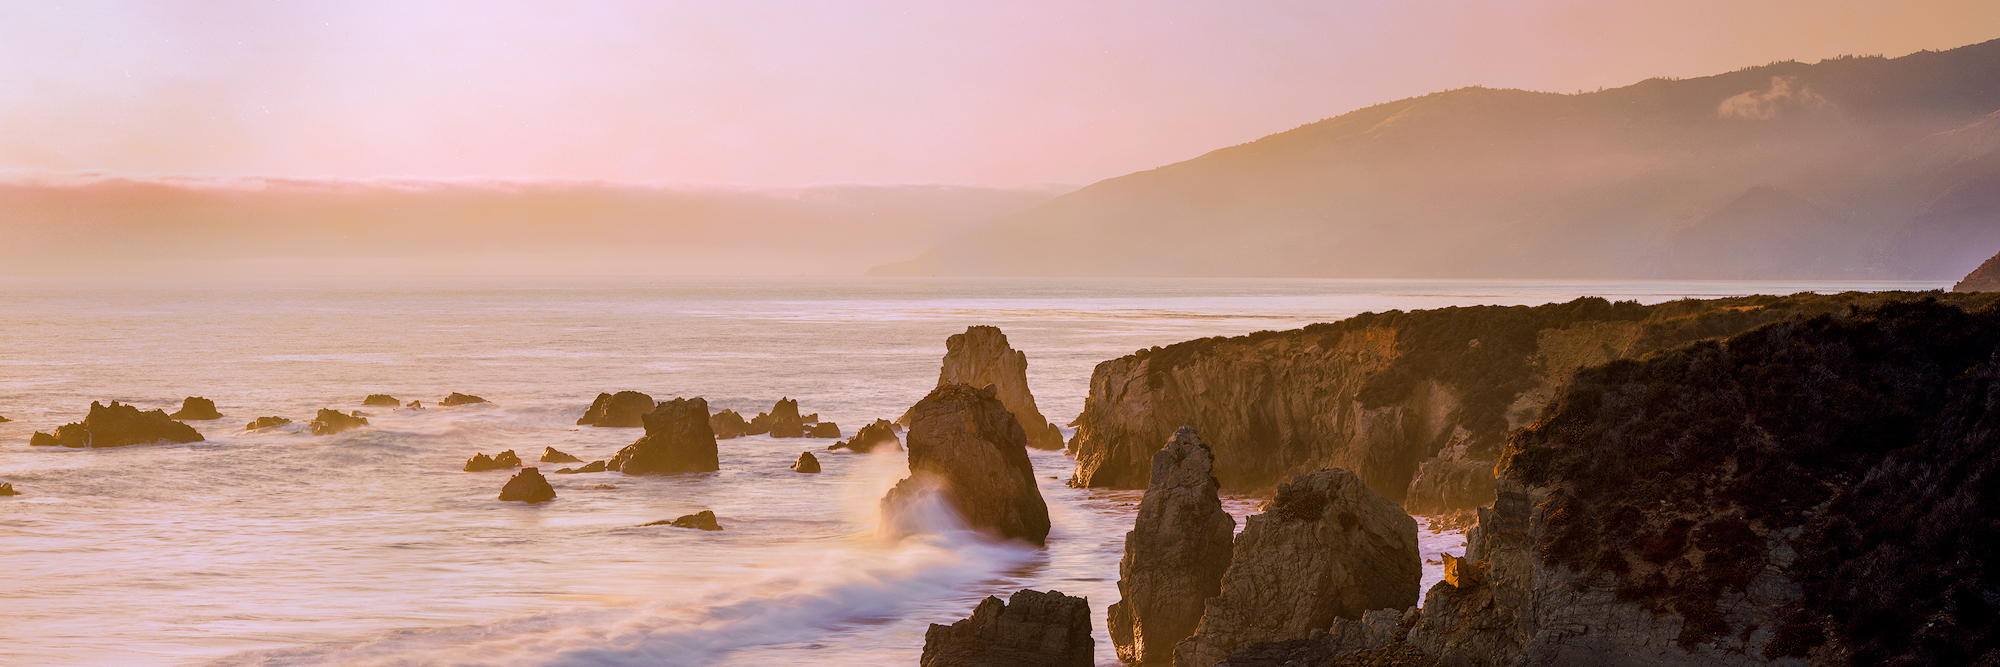 Pacific Valley by Michael Strickland